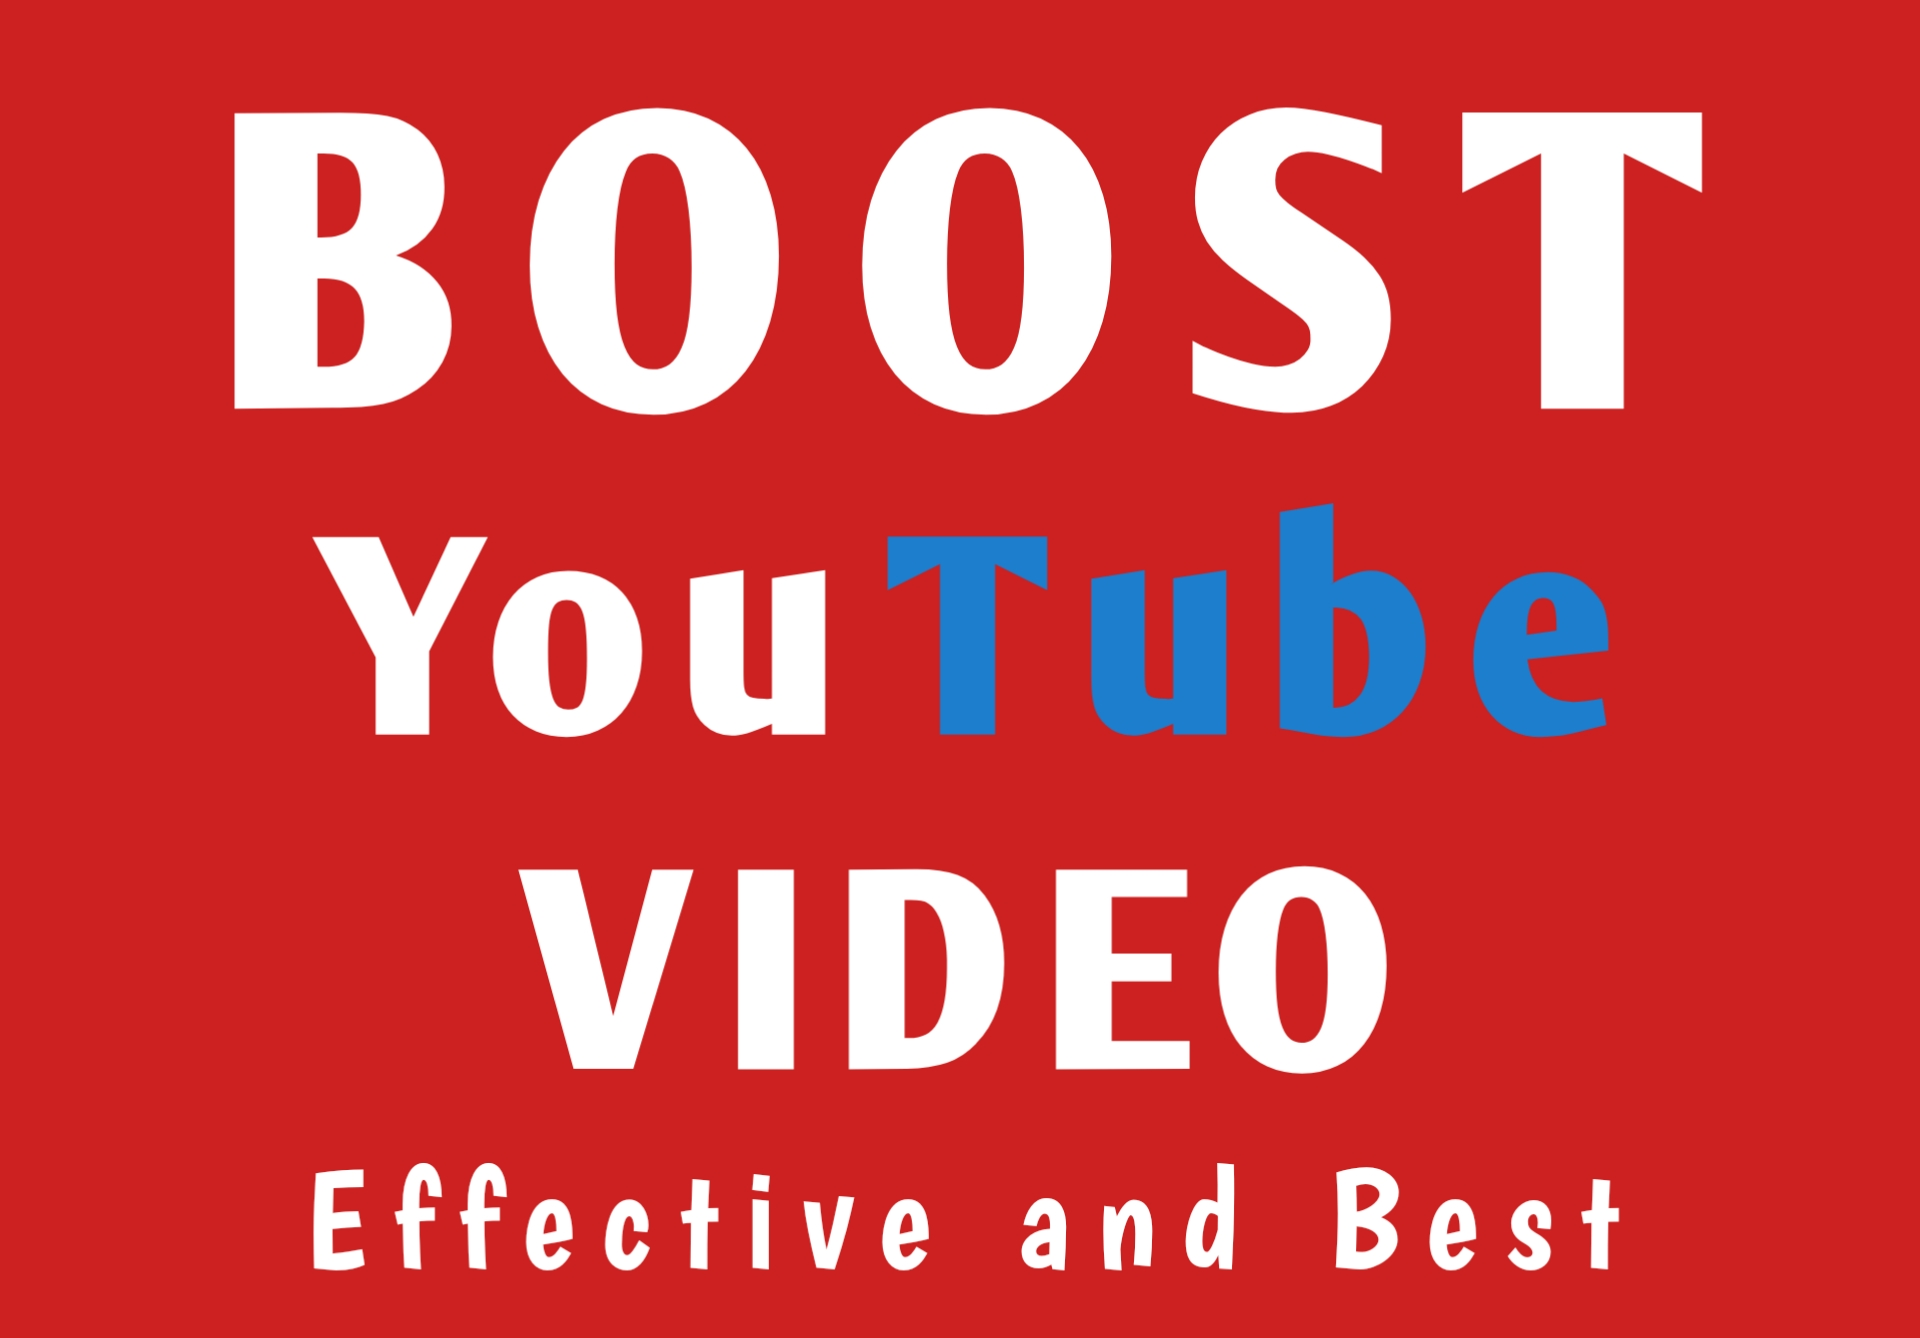 Boost Youtube Video Promotion Effectively